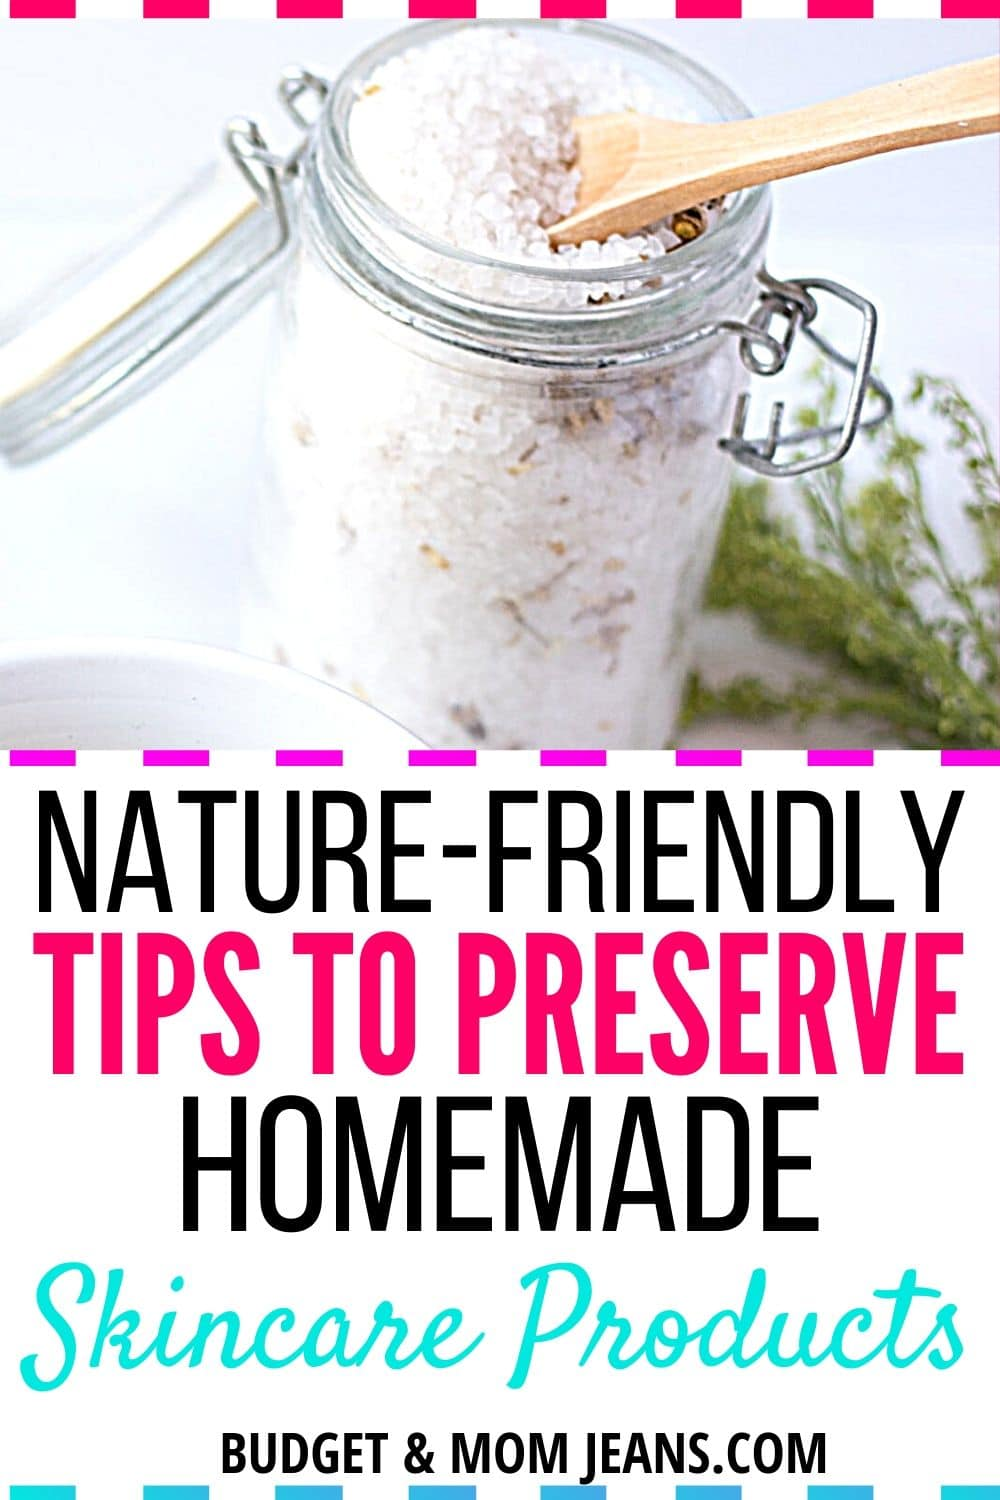 5 Nature-friendly Tips To Preserve Homemade Skincare Products